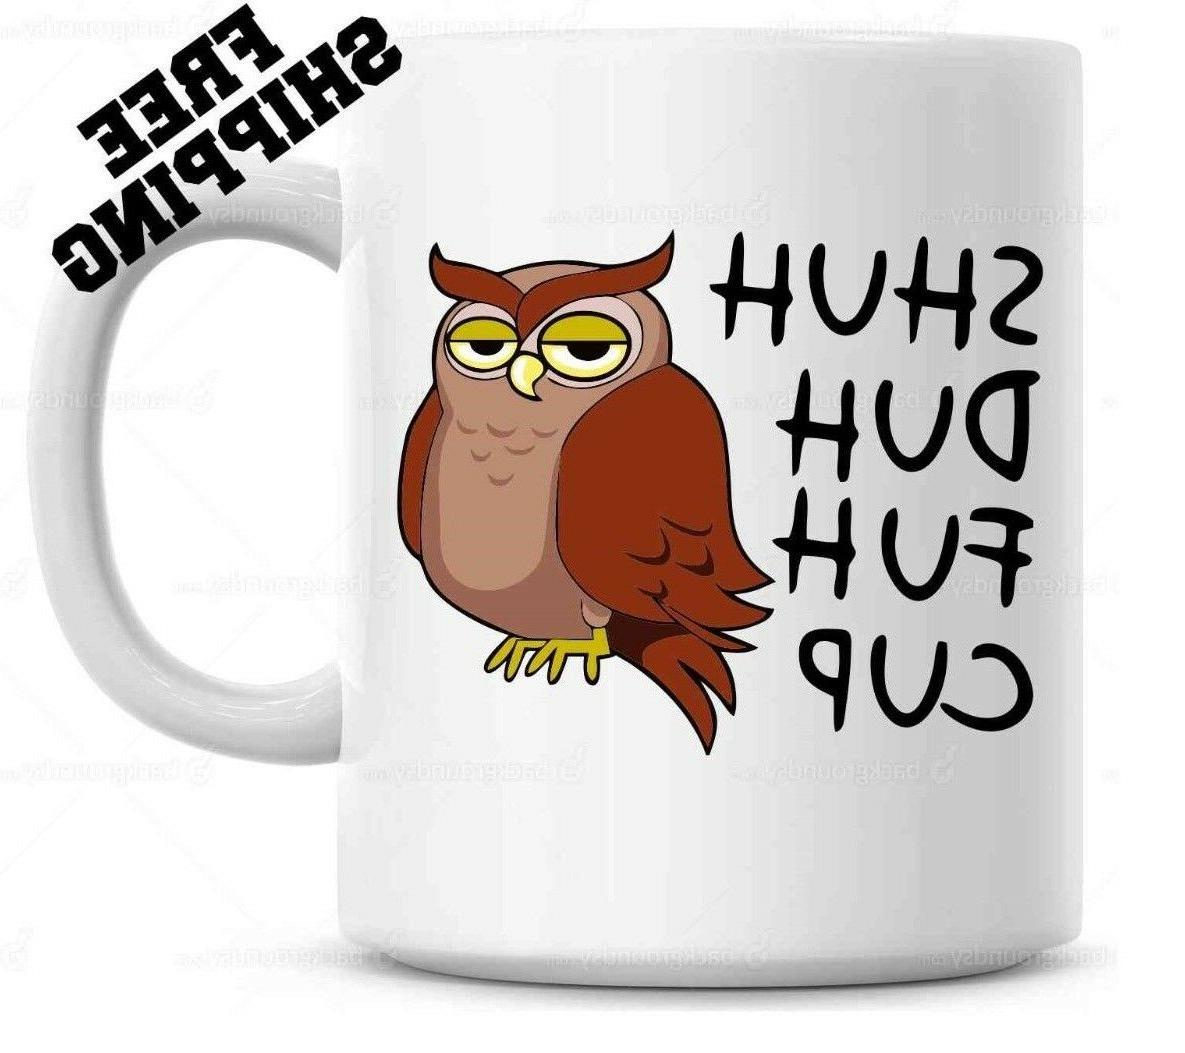 Shuh Duh Fuh Cup Funny Owl Mug  Gift for coworkers or office